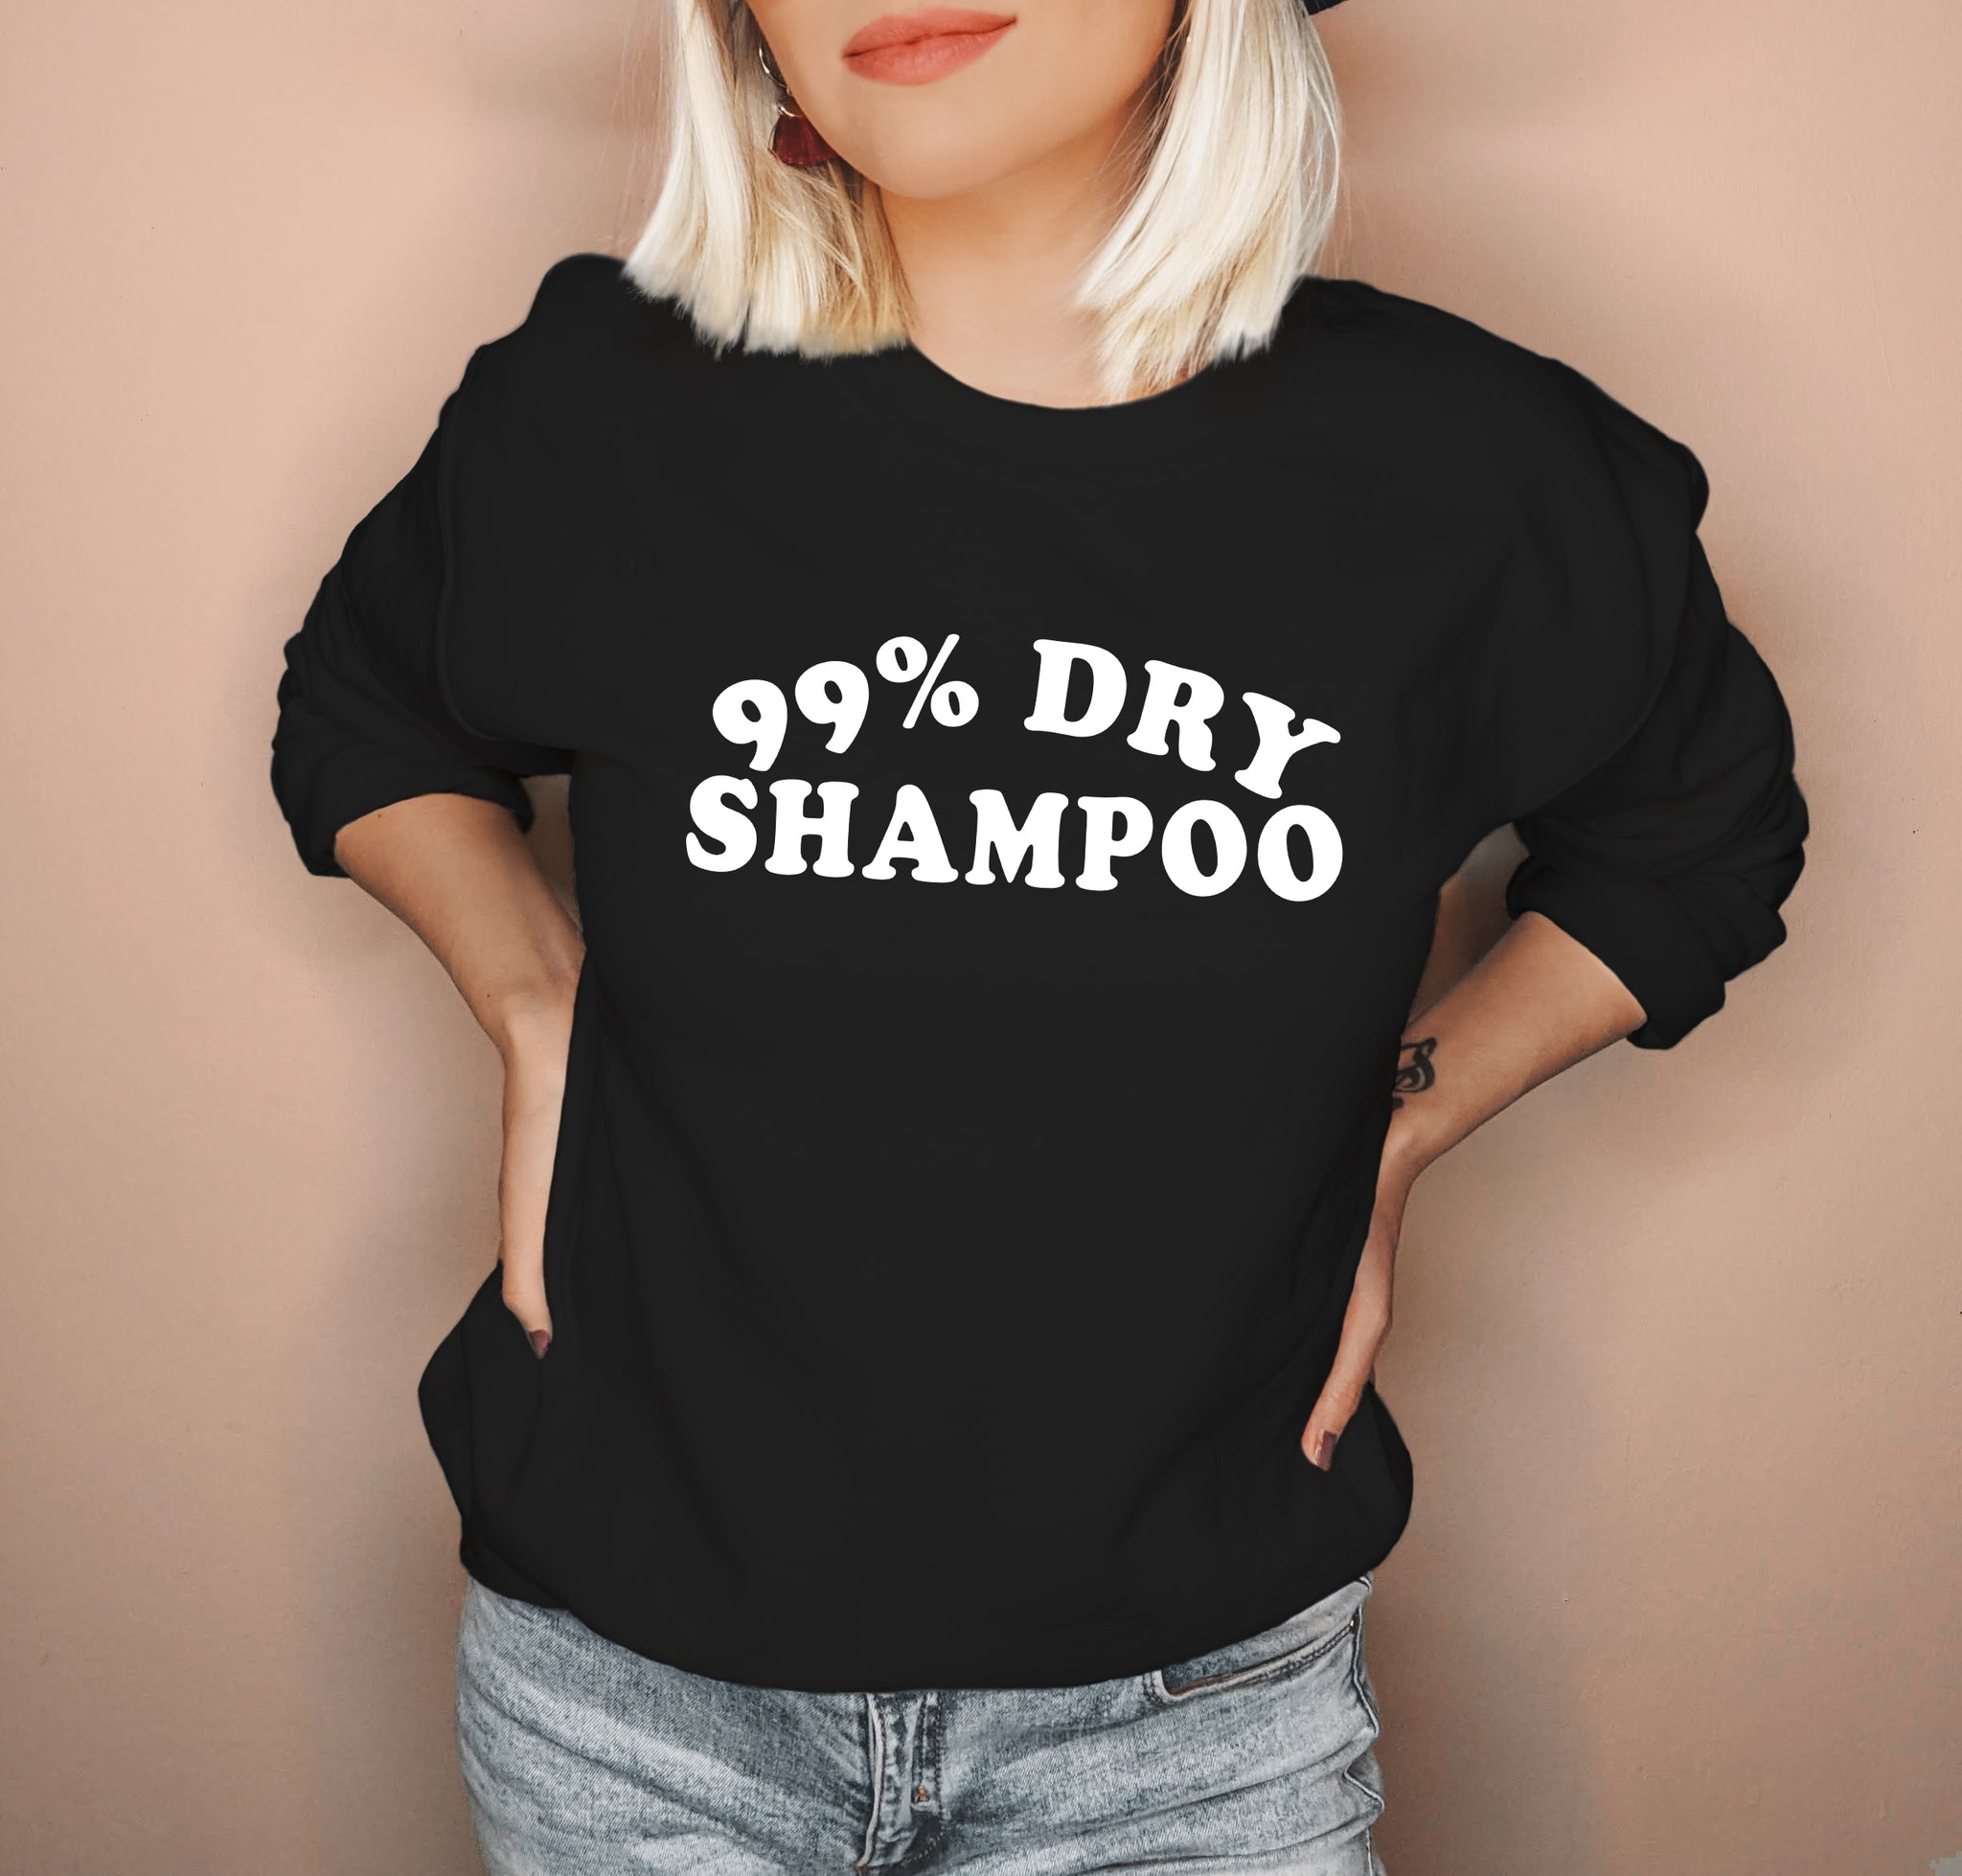 Black sweatshirt saying 99% dry shampoo - HighCiti